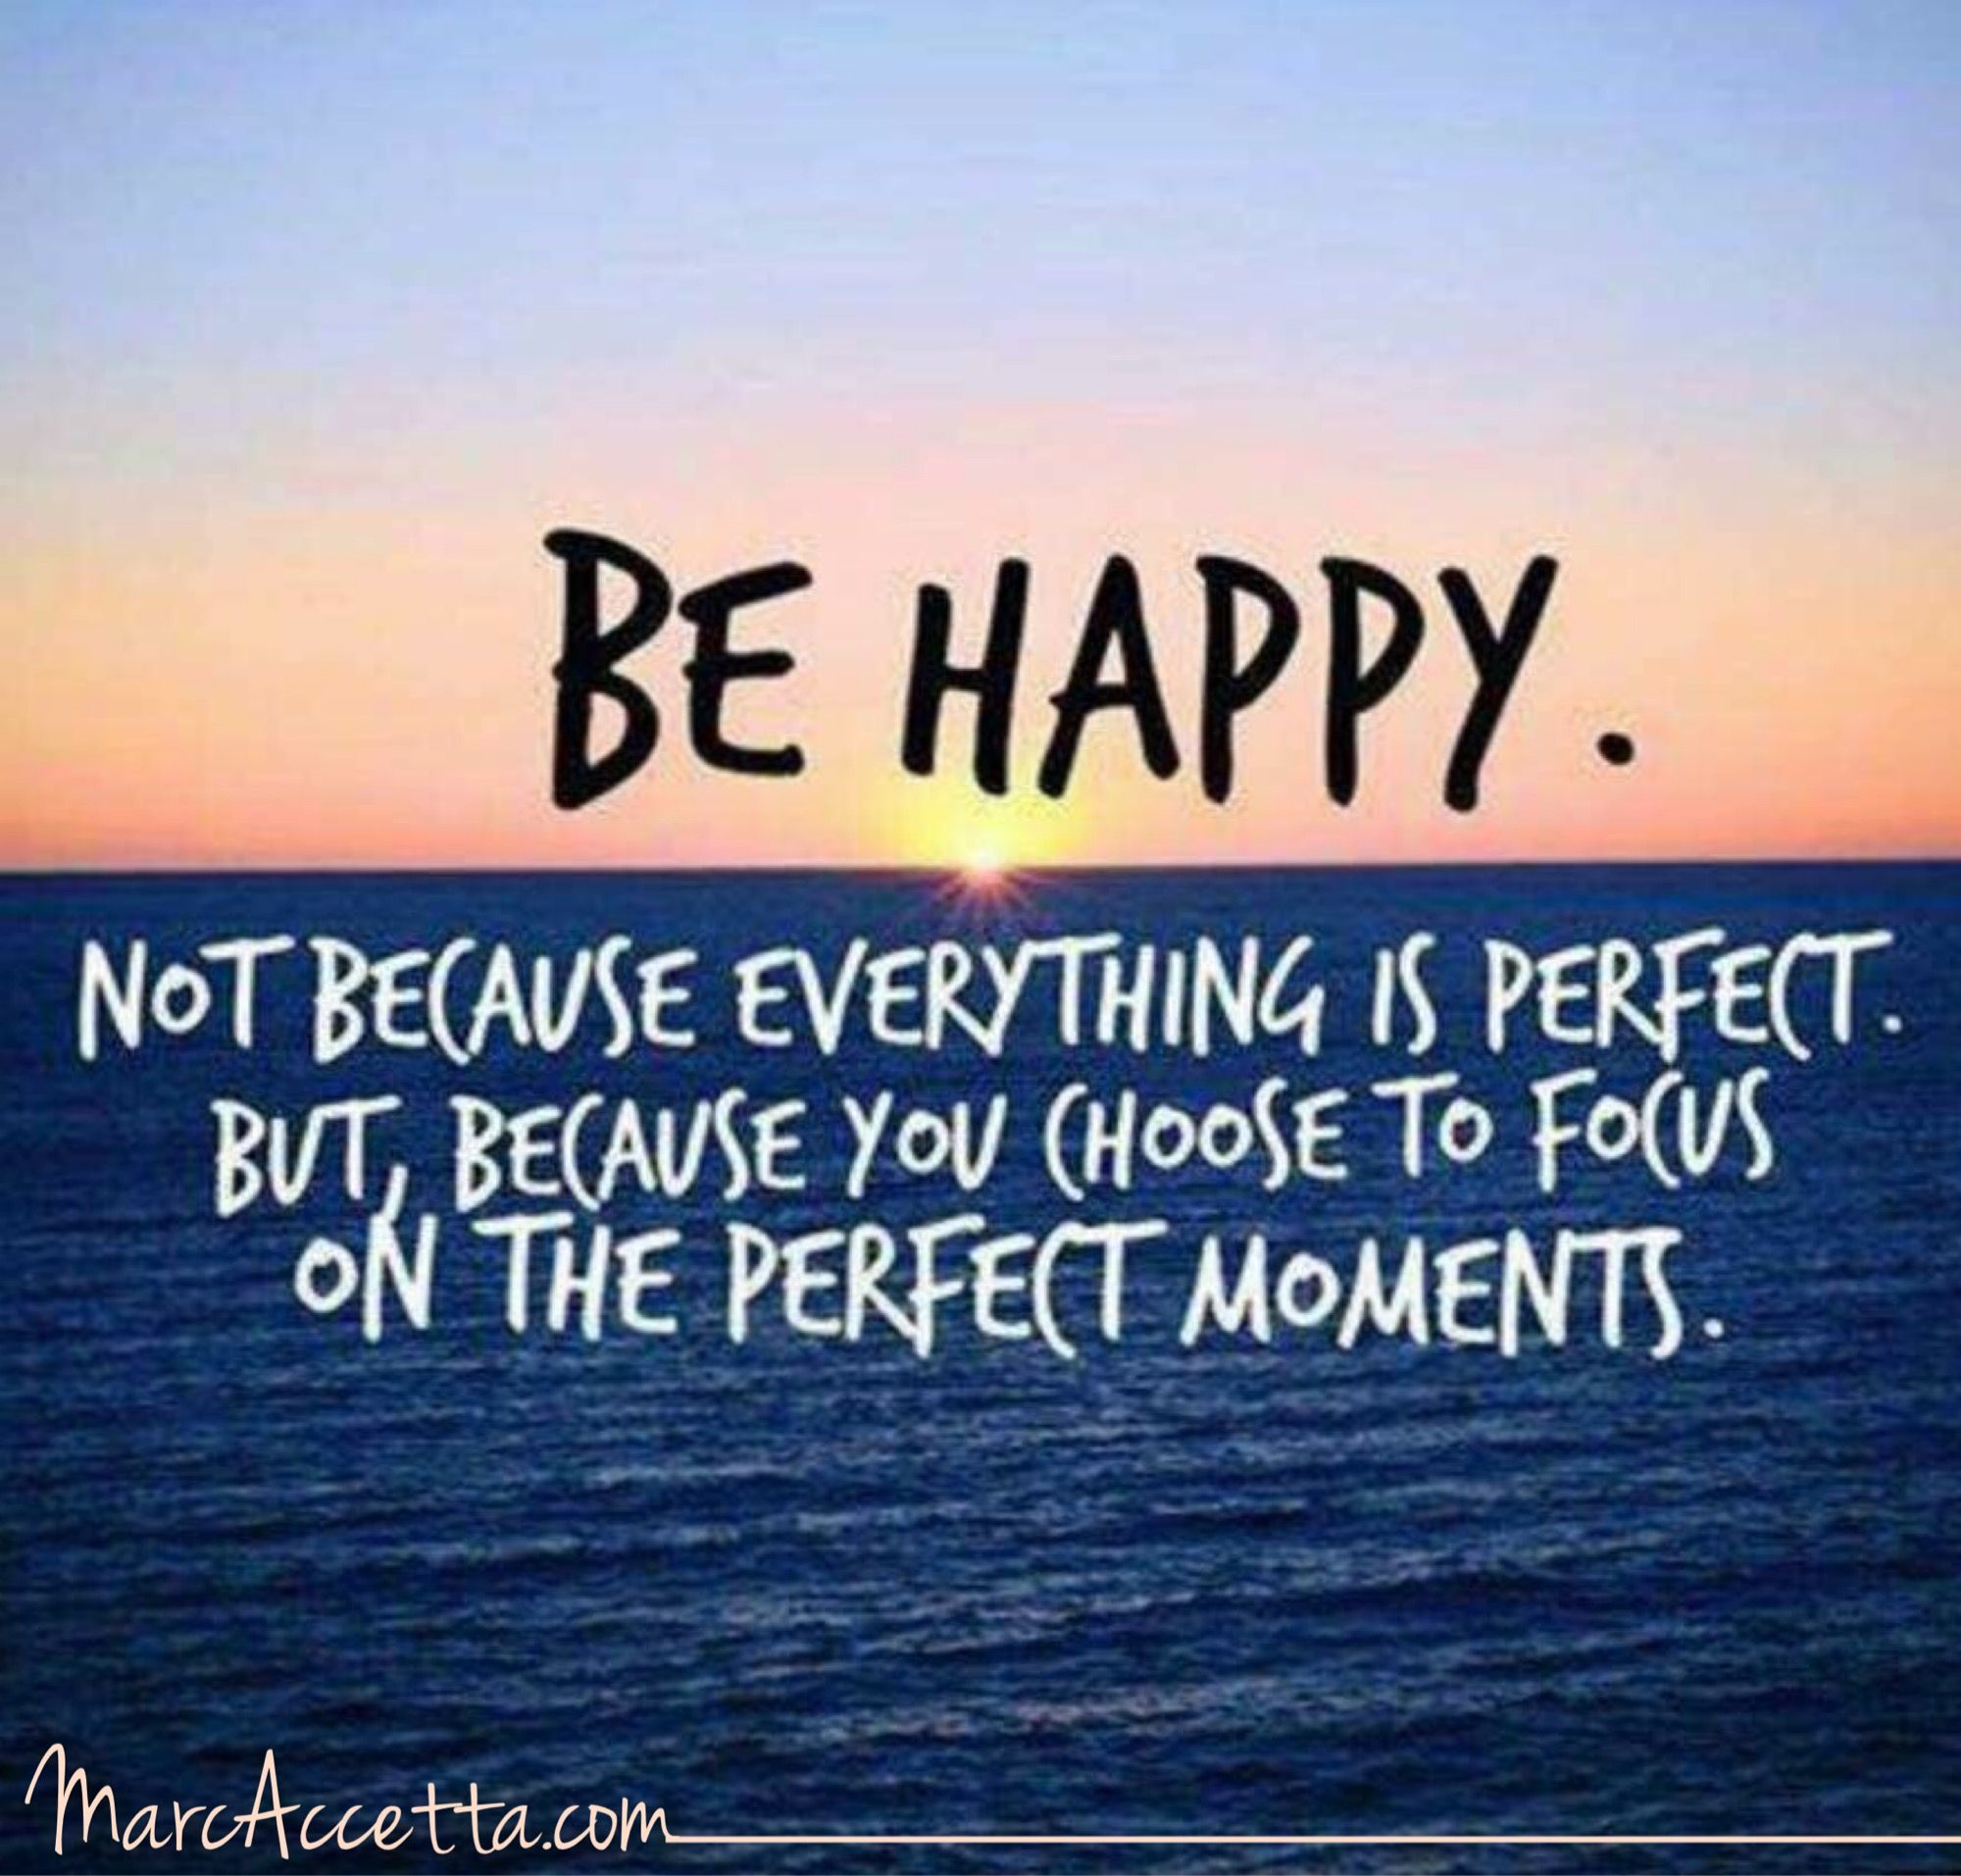 Be Happy Not Because Everything Is Perfect But Because You Choose To Focus On The Perect Moments Behappy Q Positive Quotes Motivational Quotes Life Quotes